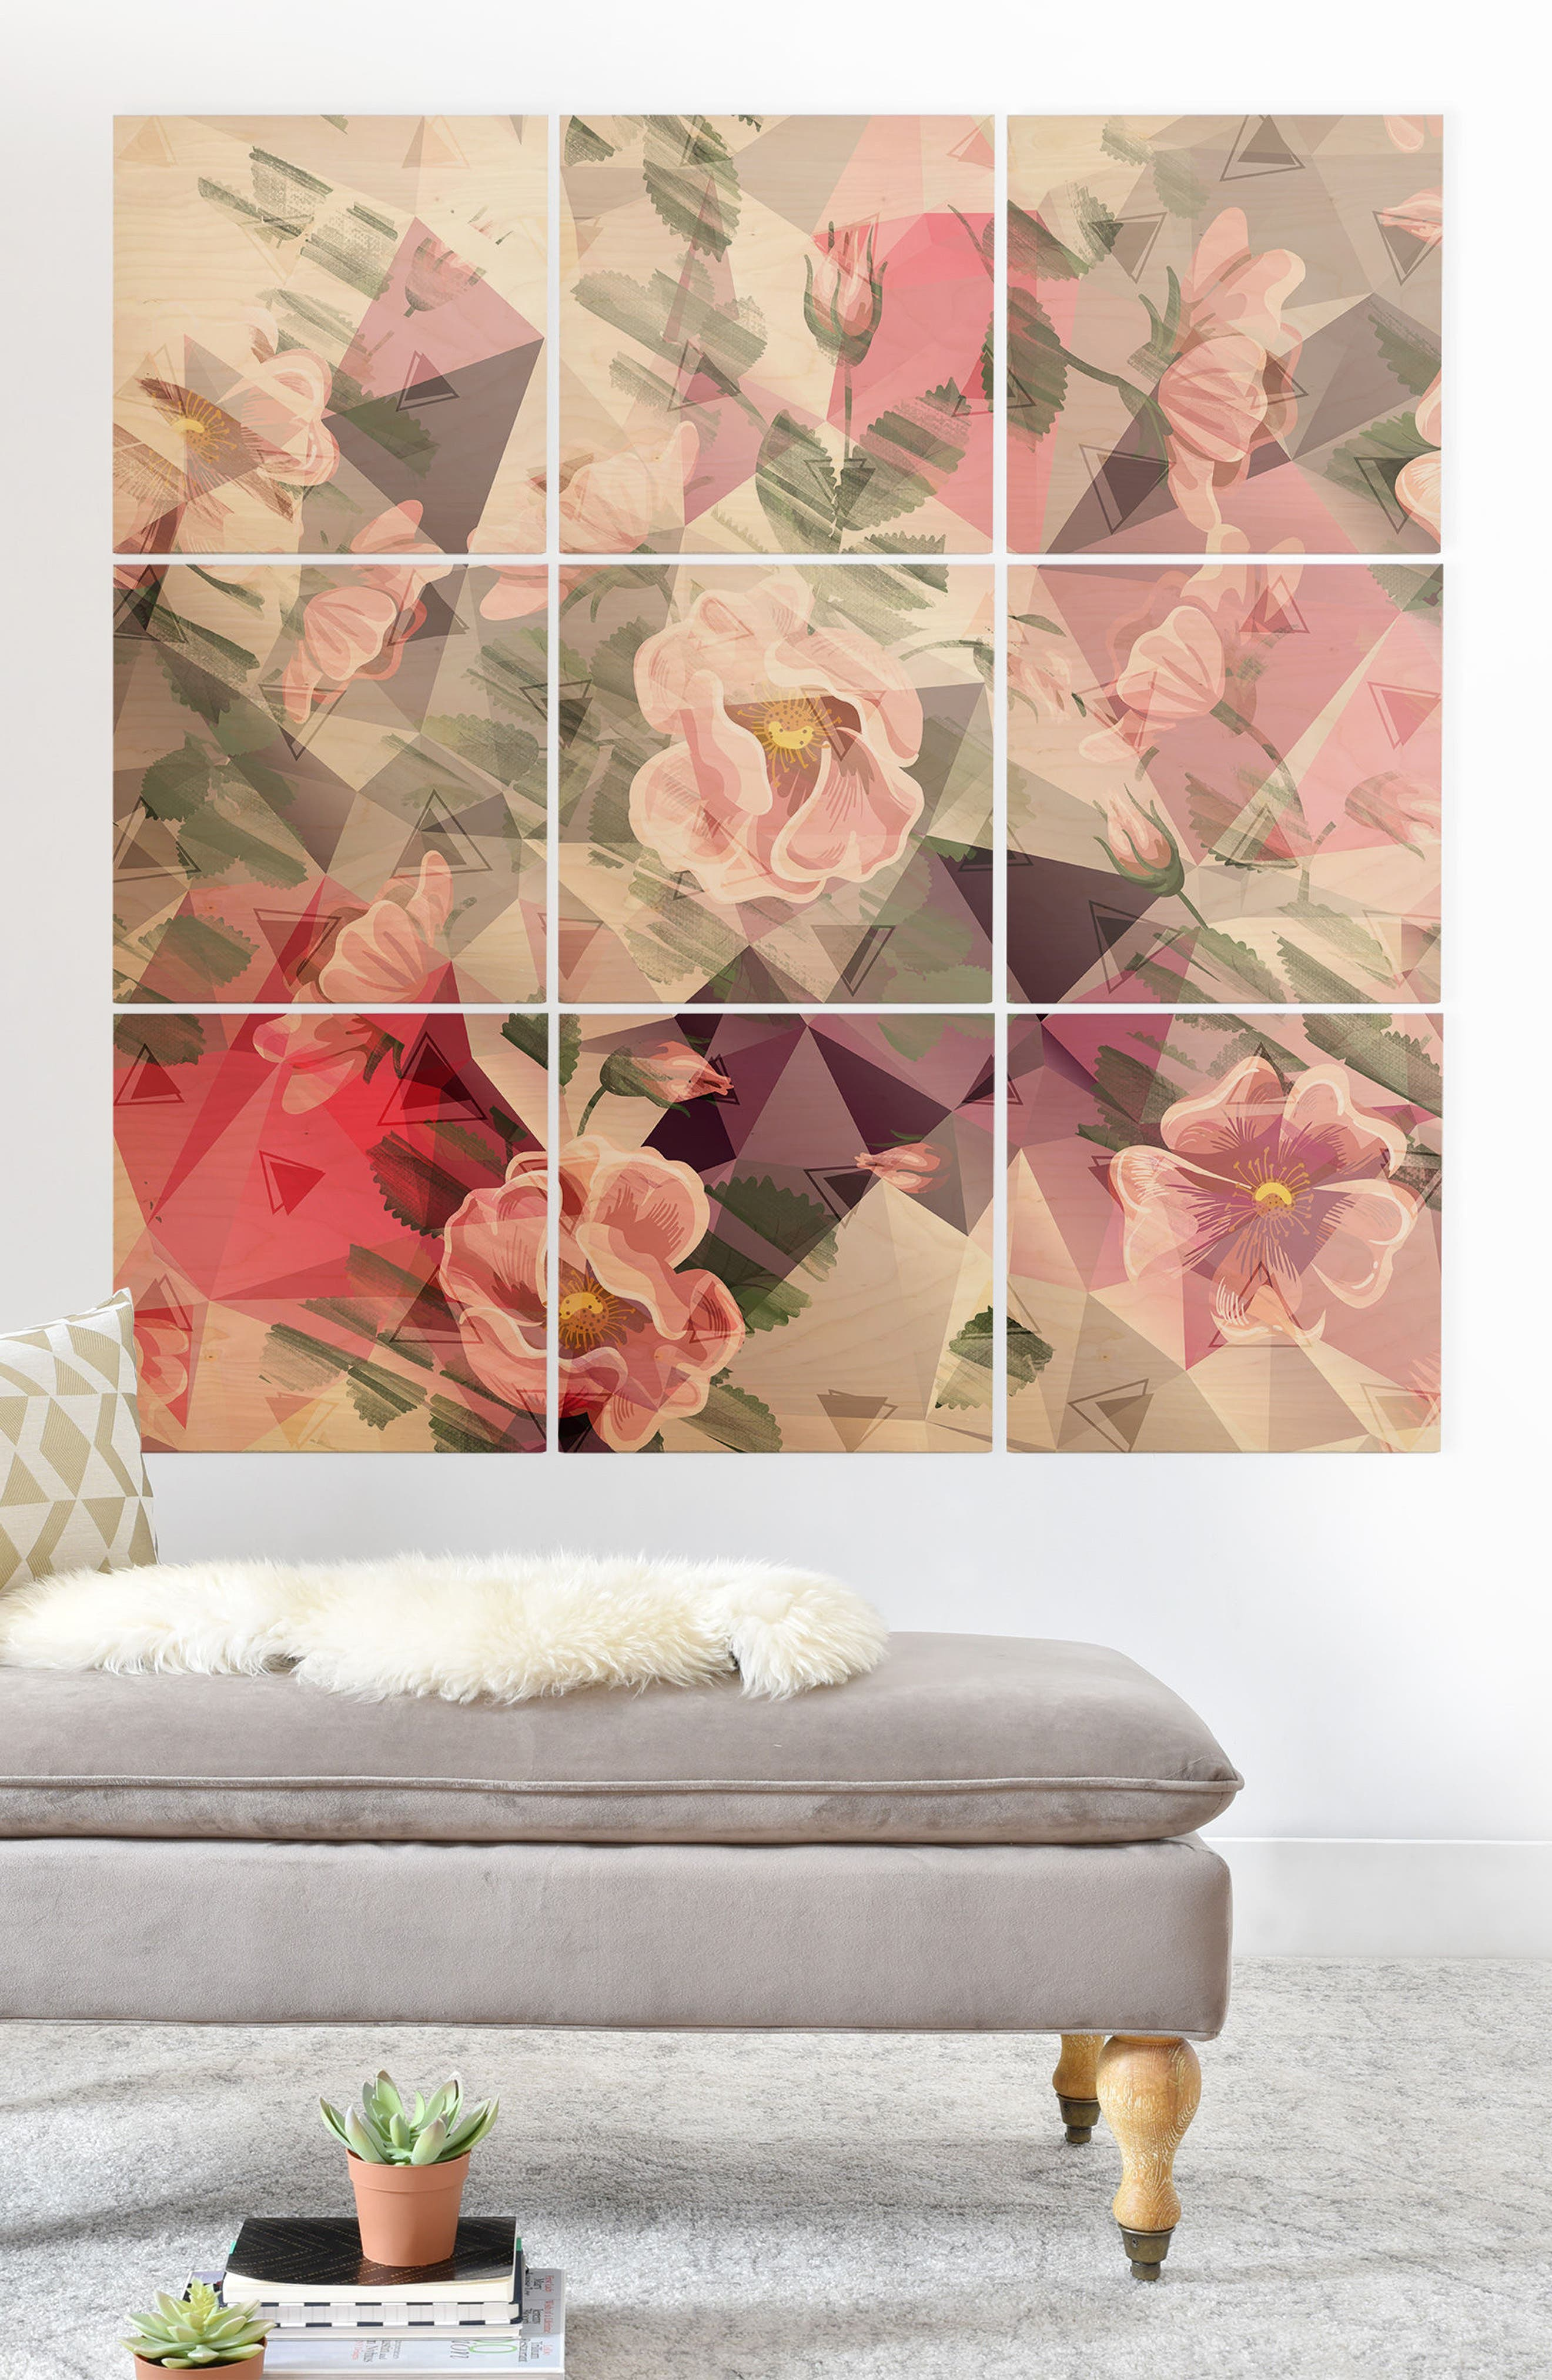 DENY DESIGNS,                             Floral 9-Piece Wood Wall Mural,                             Alternate thumbnail 2, color,                             PINK